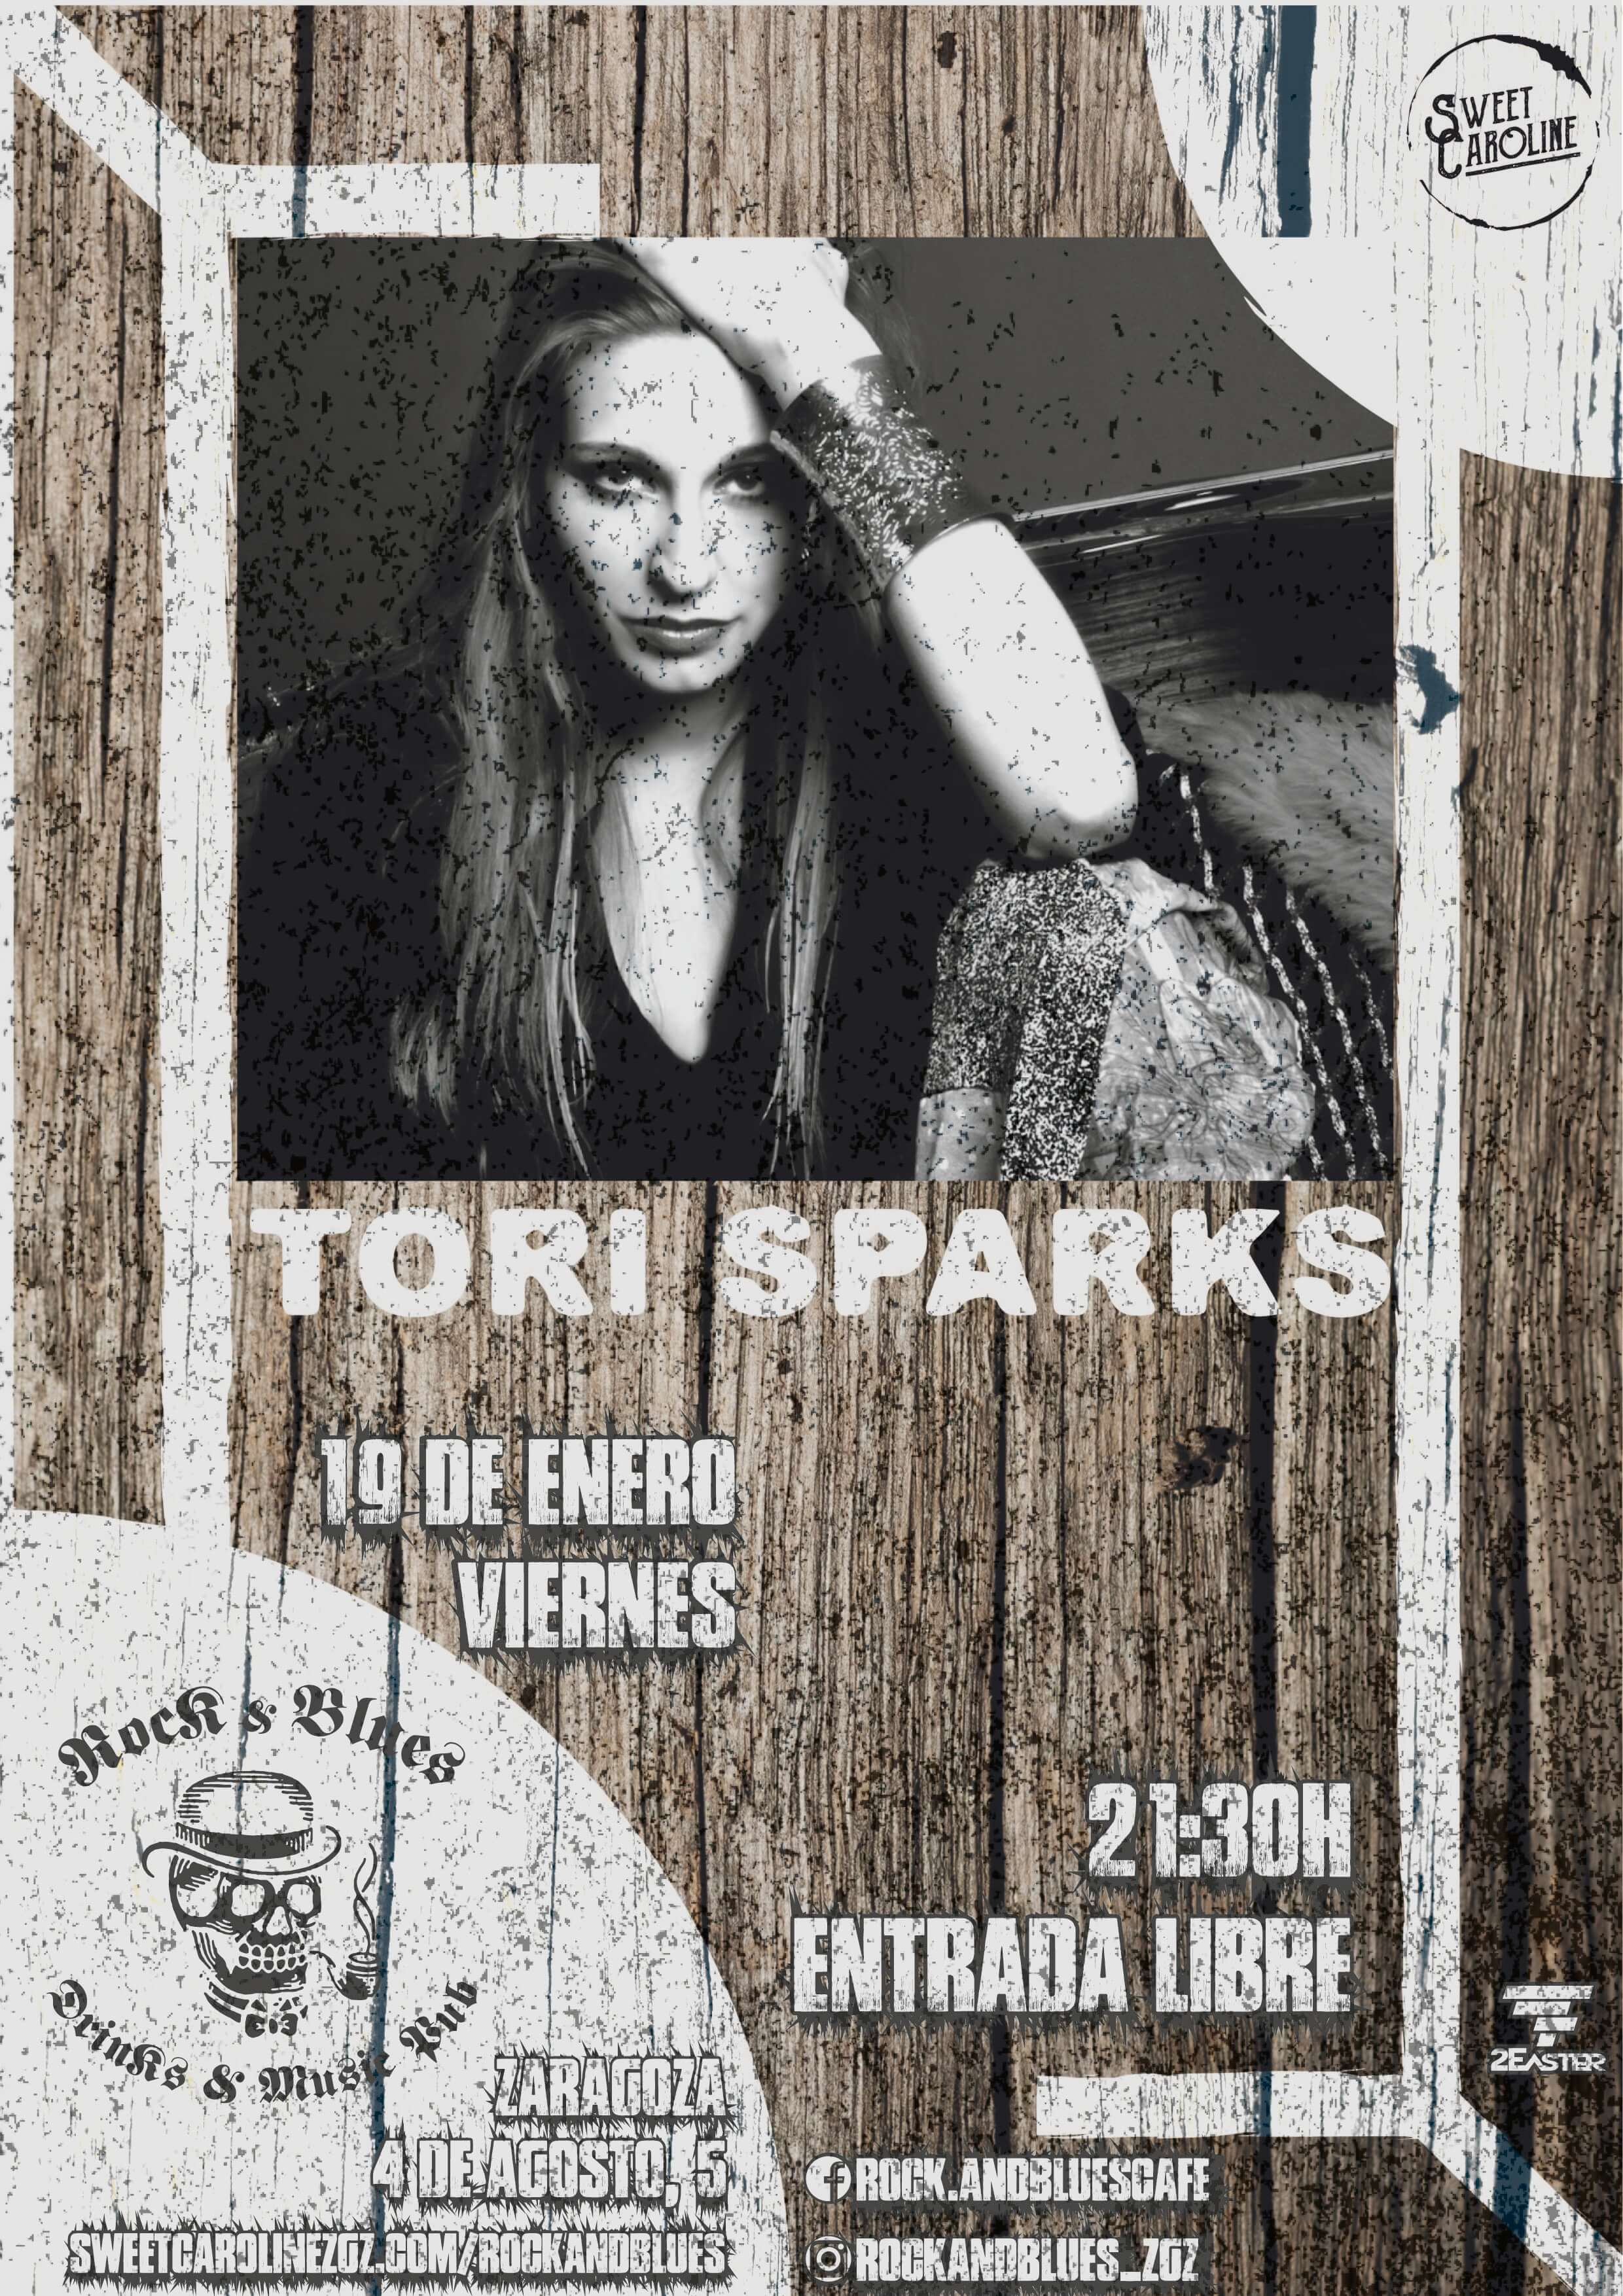 Tori Sparks Rock & Blues Zaragoza